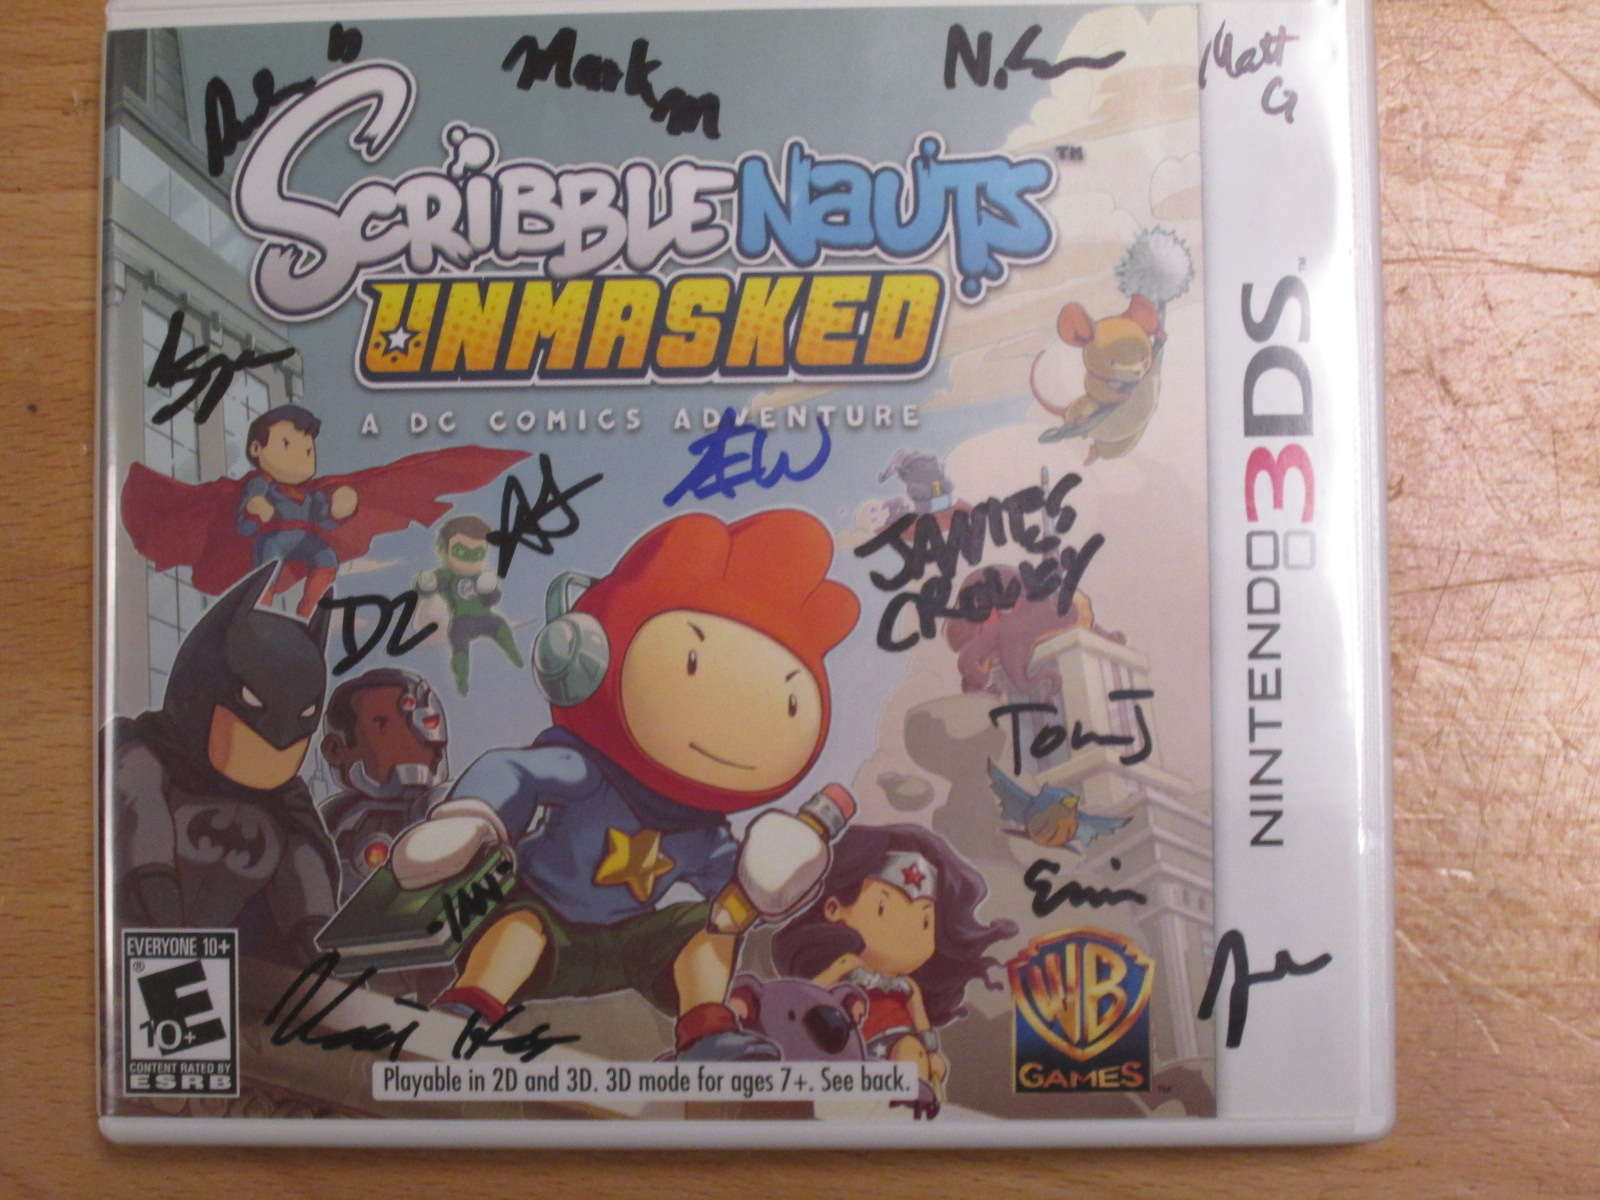 Image 1 of Scribblenauts Unmasked A DC Comics Adventure Nintendo For 3DS